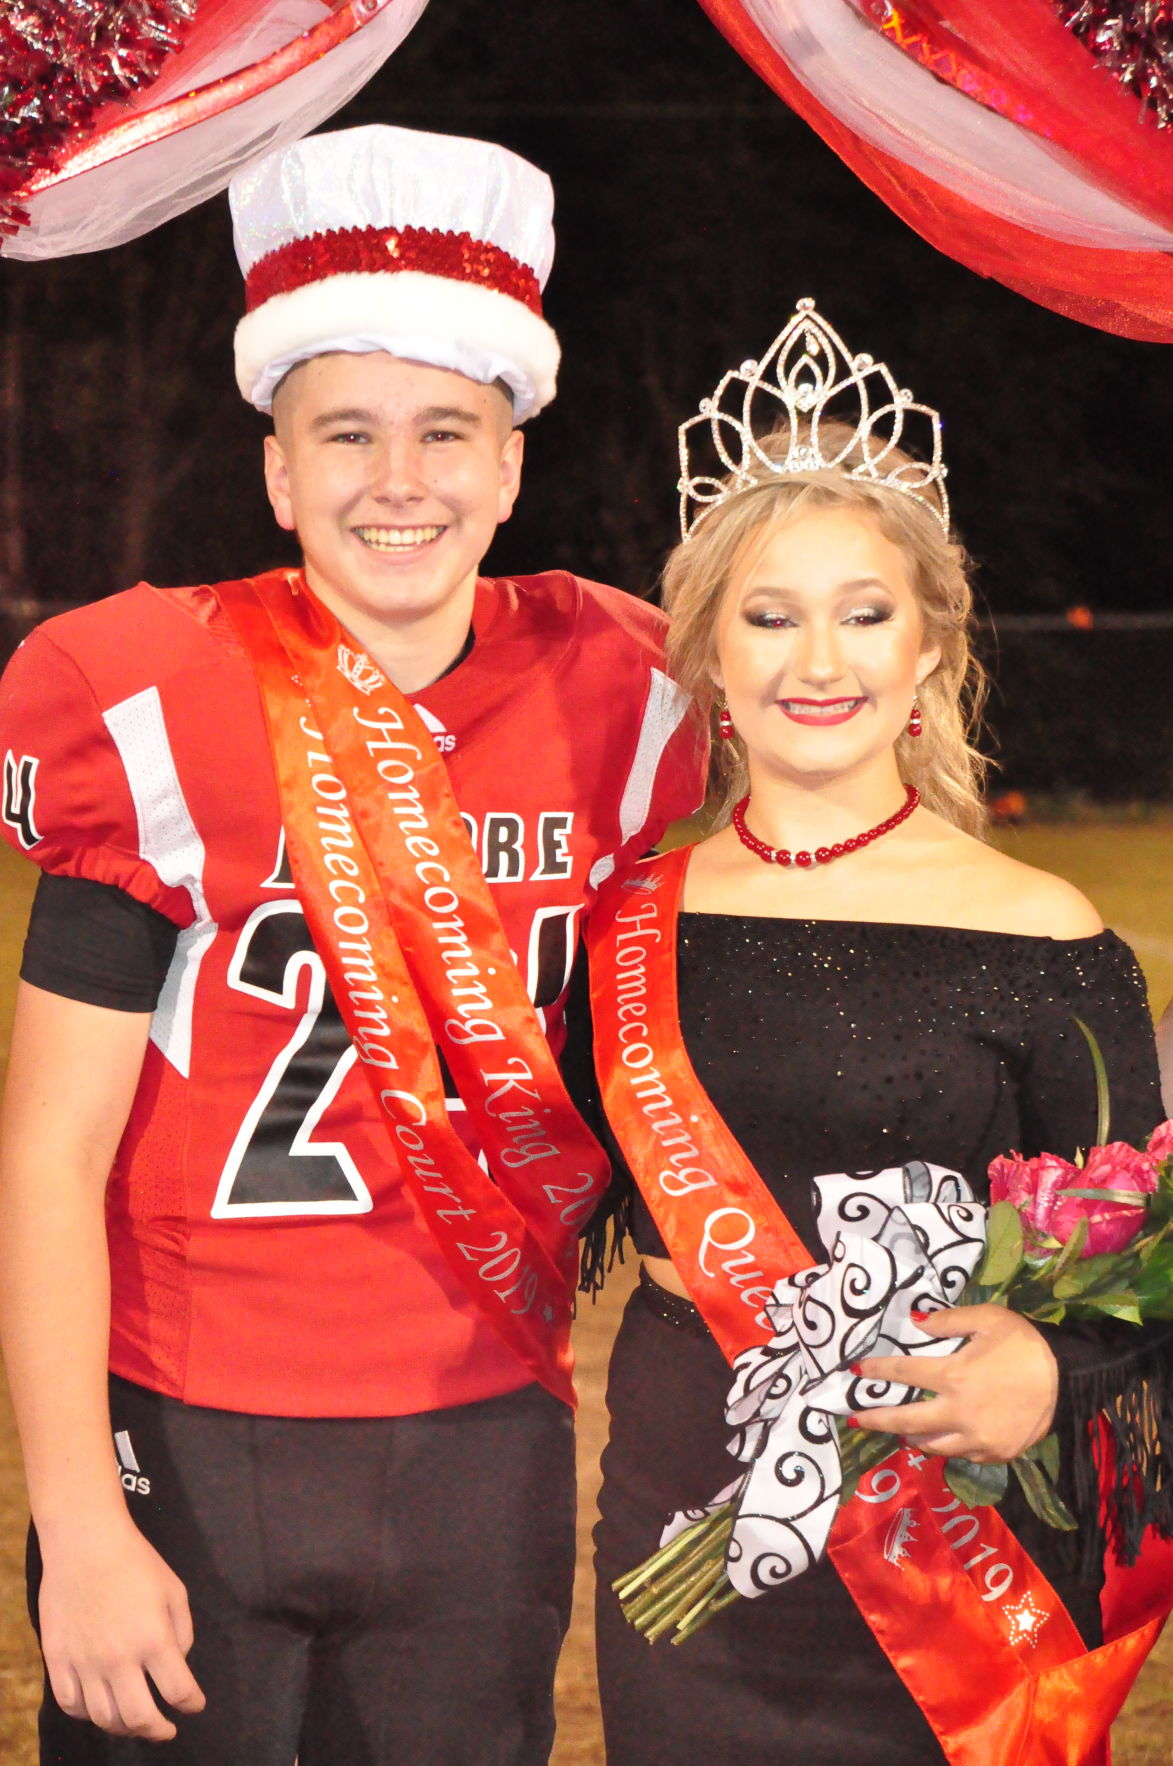 20191016-wdn-lenore homecoming1